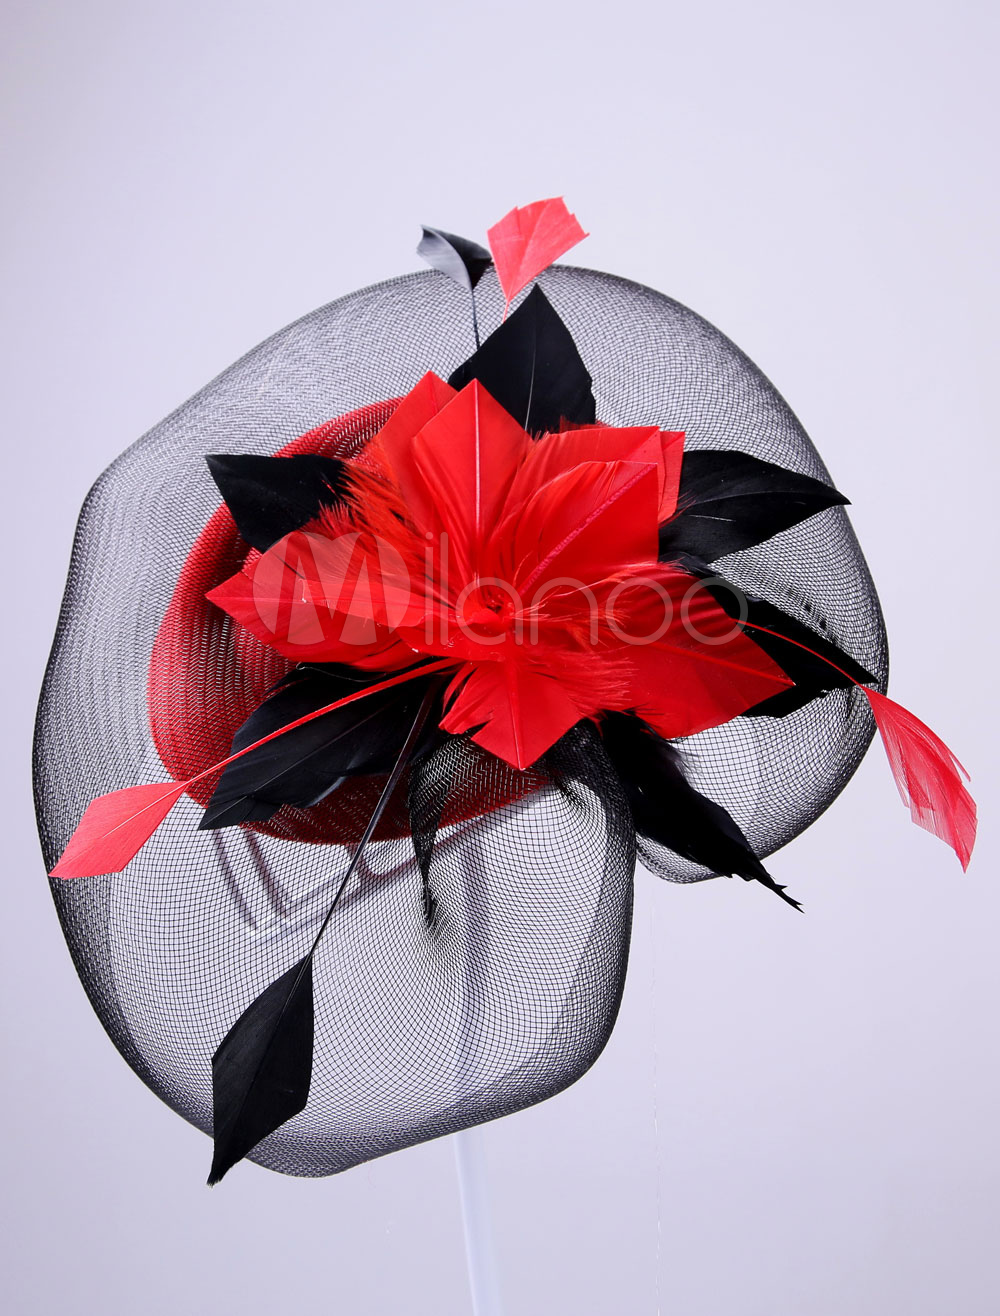 Buy Black Wedding Headpieces Royal Tulle Feather Flower Shape Fascinator Bridal Birdcage Veil for $14.99 in Milanoo store